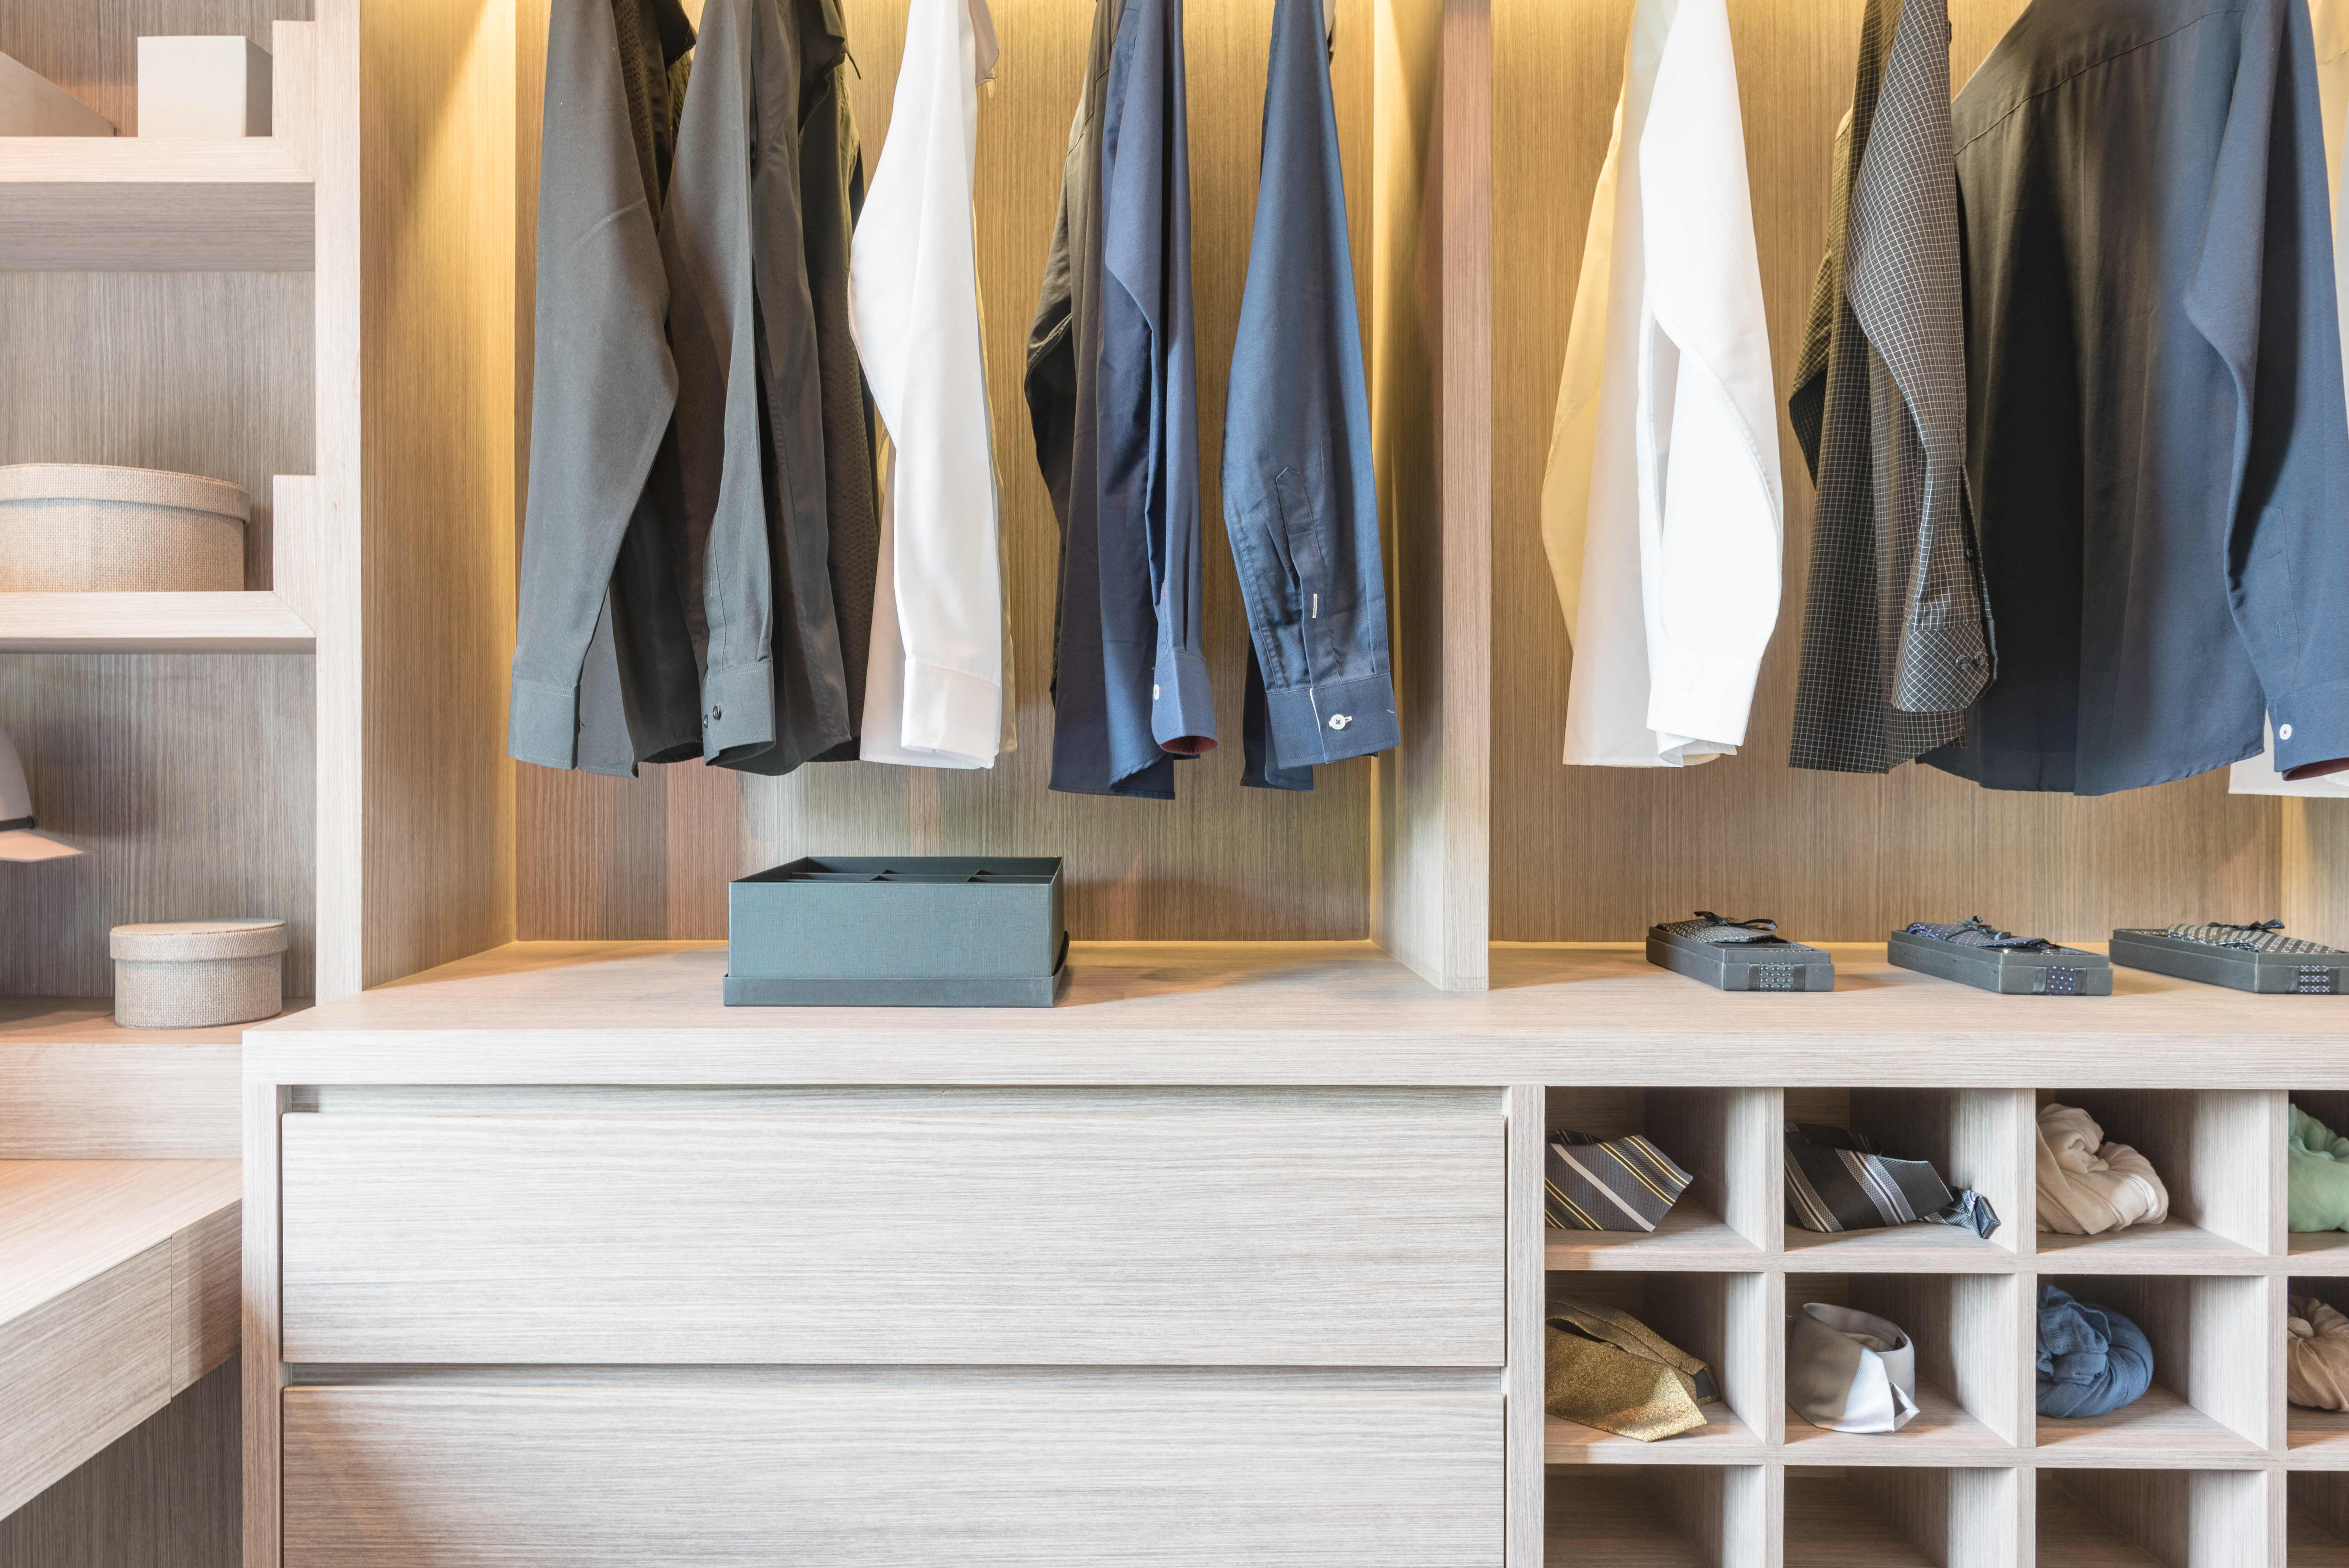 Innovative Closet Designs provides a wide range of organizational solutions